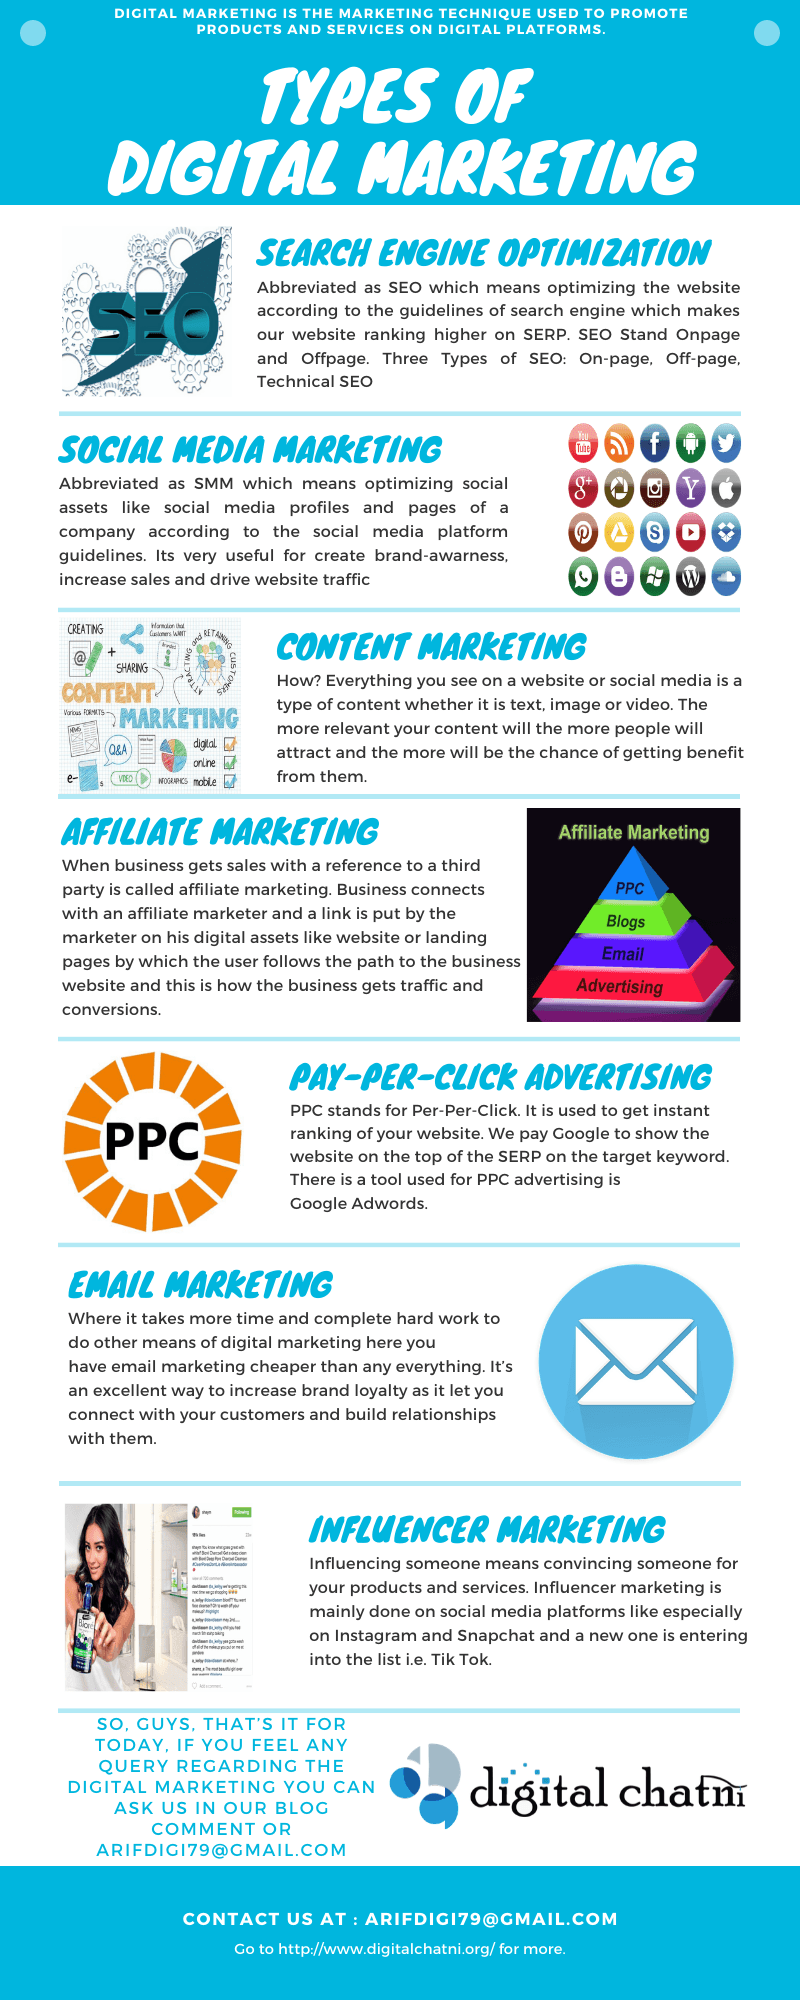 Know more about types of Digital Marketing. and which one will be good or your future.